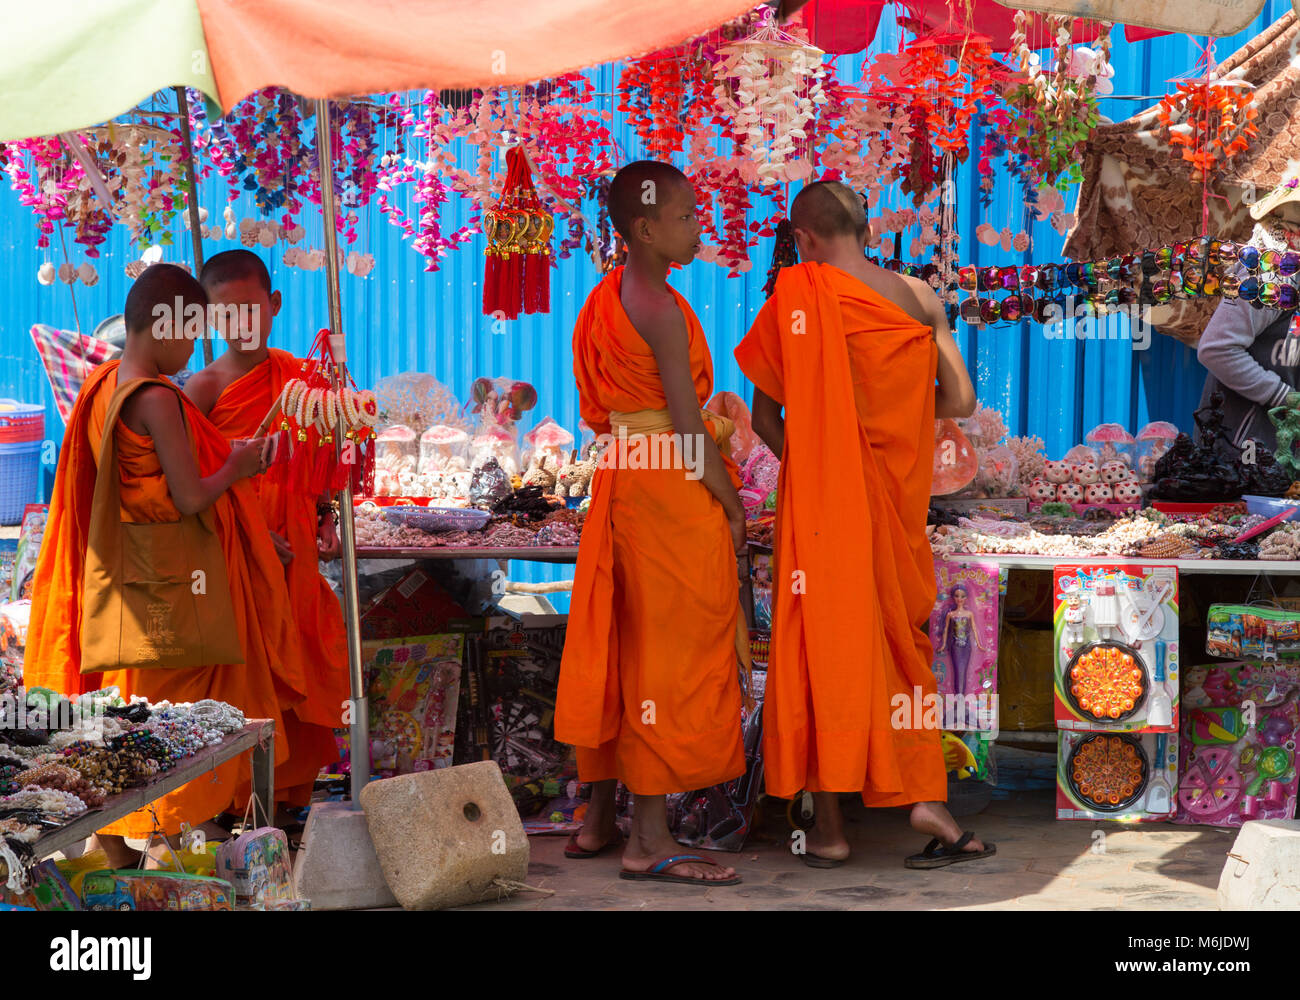 Young buddhist monks shopping at a market stall, Kep, Cambodia, Asia - Stock Image